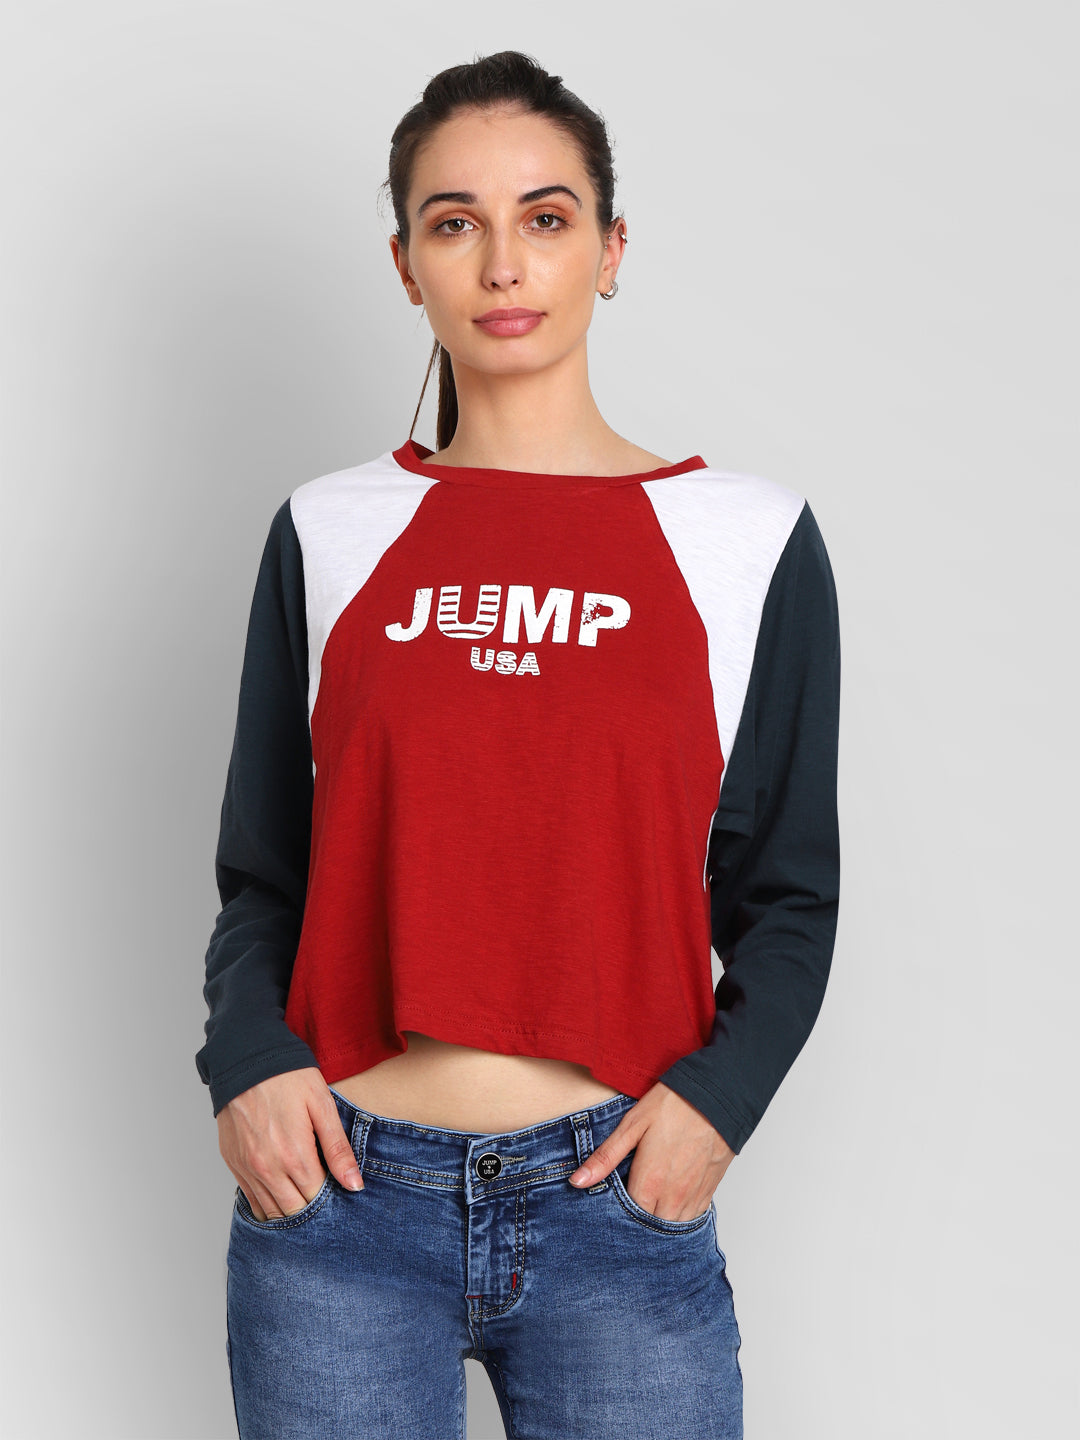 JUMP USA Women Red Self Design Crop Top - JUMP USA